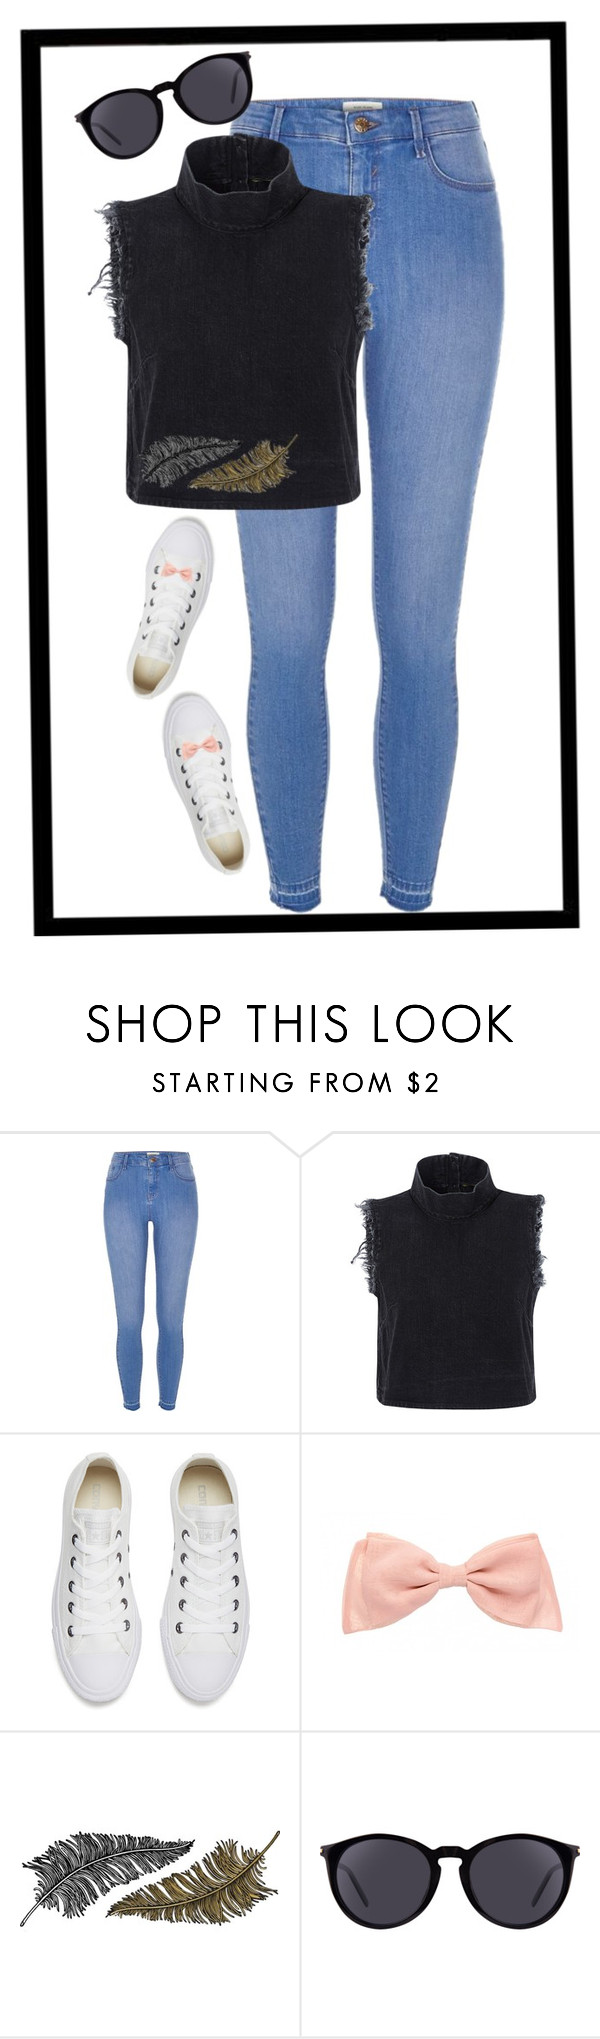 """""""Geen titel #296"""" by x-essie-x ❤ liked on Polyvore featuring River Island, Rachel Comey, Converse, Paperself, Yves Saint Laurent, MyStyle and back2school"""